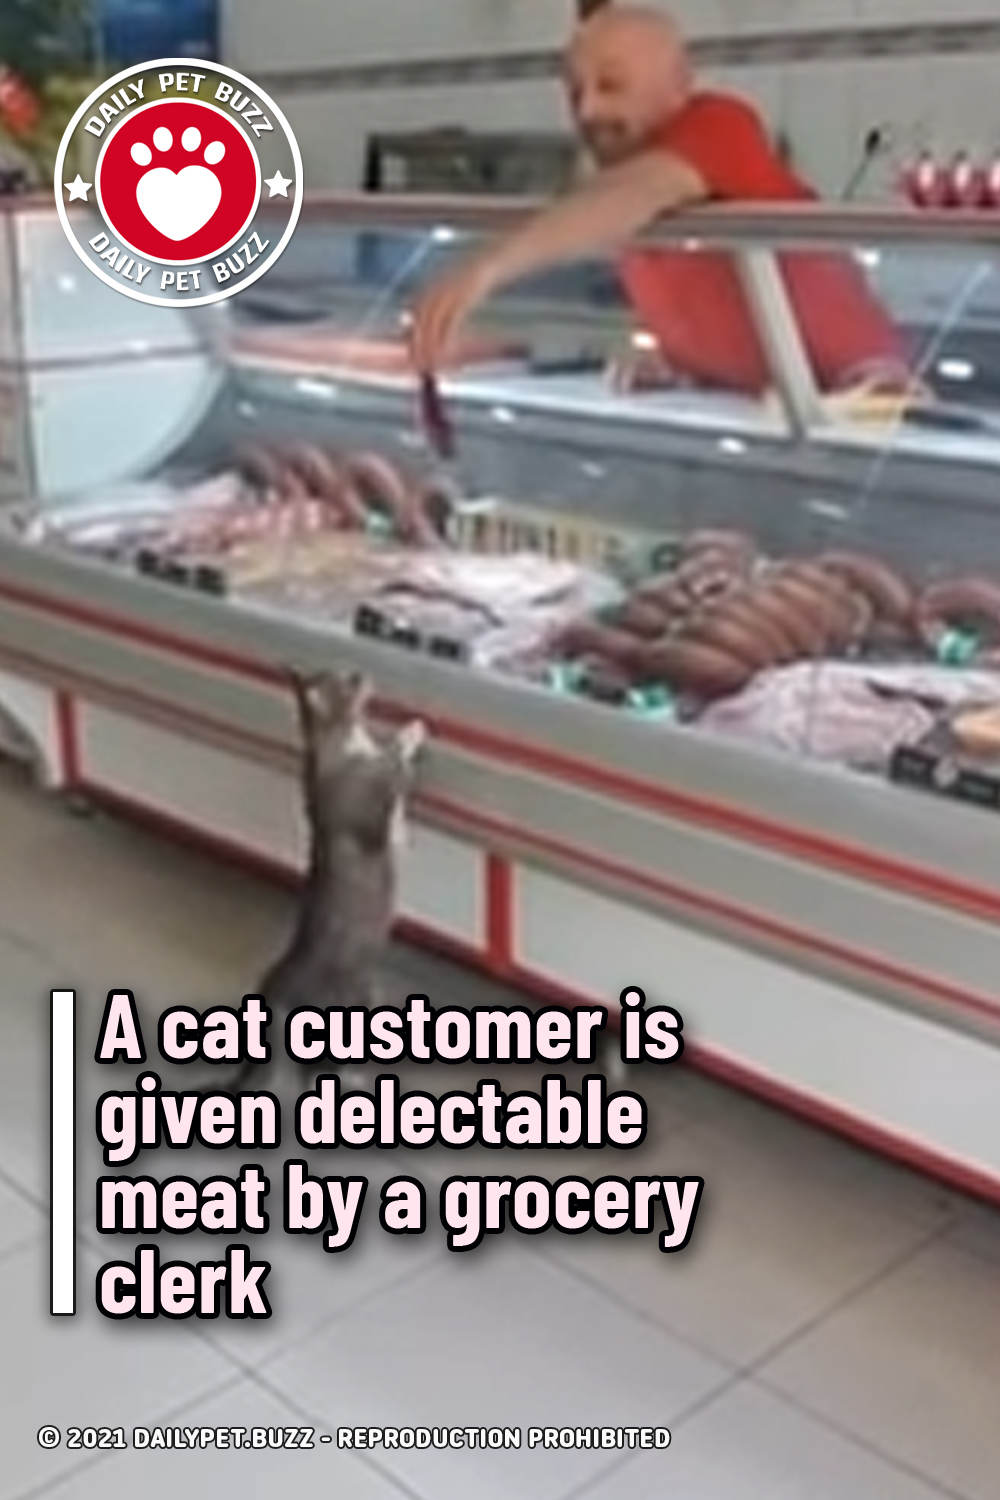 A cat customer is given delectable meat by a grocery clerk